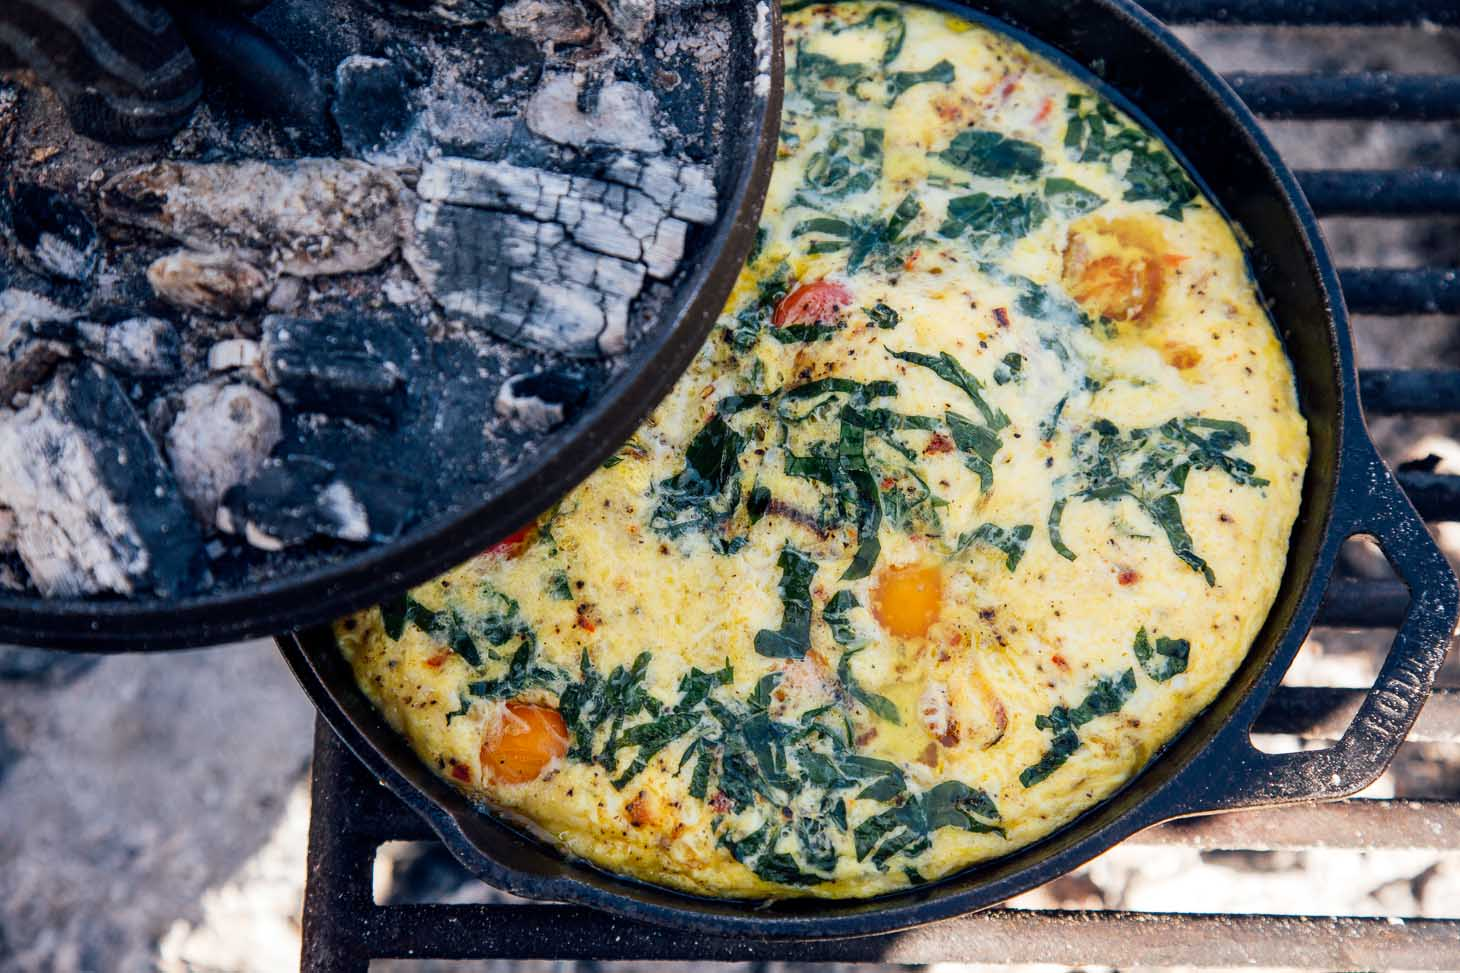 Lid to a cast iron skillet being removed to reveal a vegetable frittata.